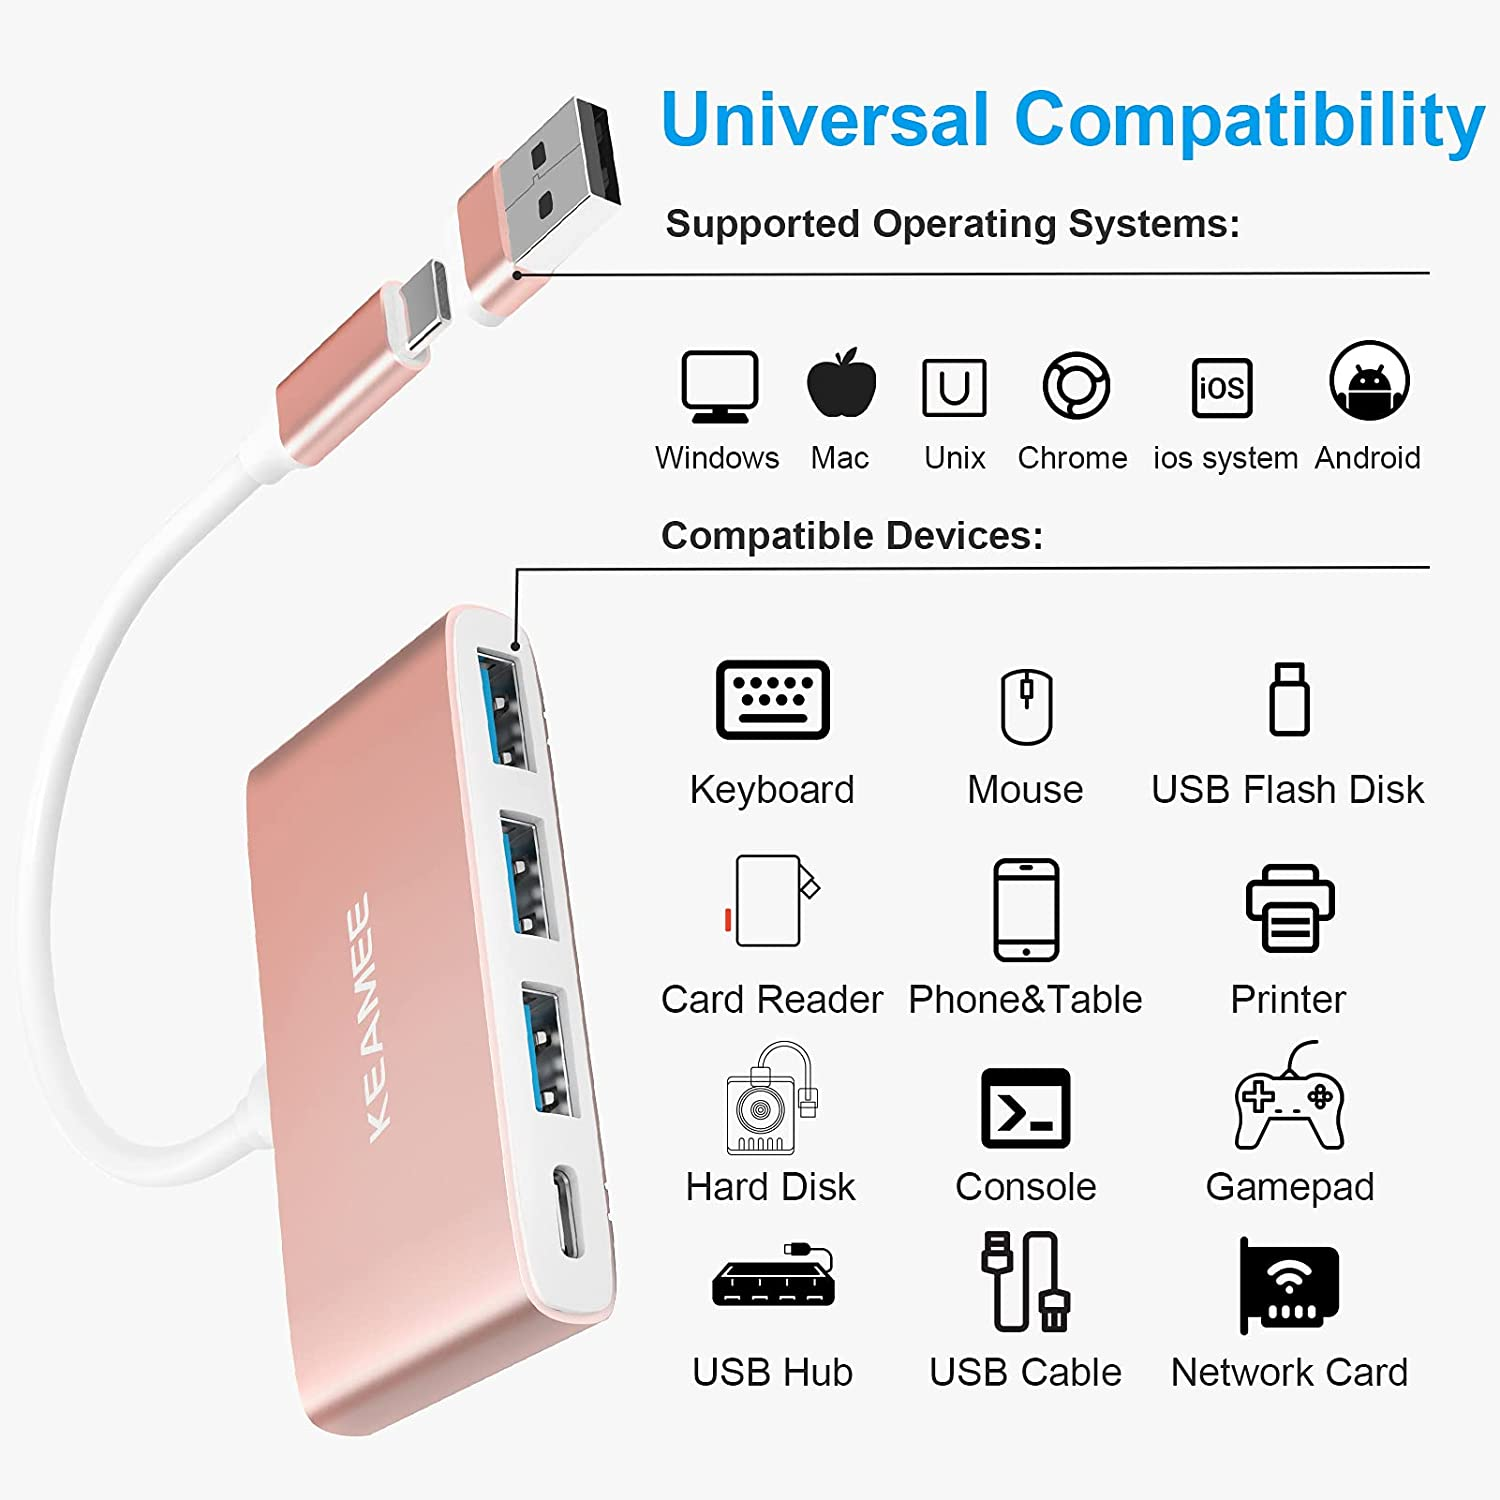 USB C Hub 4 Ports, USB 3.0 Hub with a USB C to USB Adapter, Small USB Hub for Laptop, USB C Adapter Compatible with MacBook pro Adapter, New Mac Air/Surface Pro 7, Chromebook, iPad Pro/iMac, Laptops